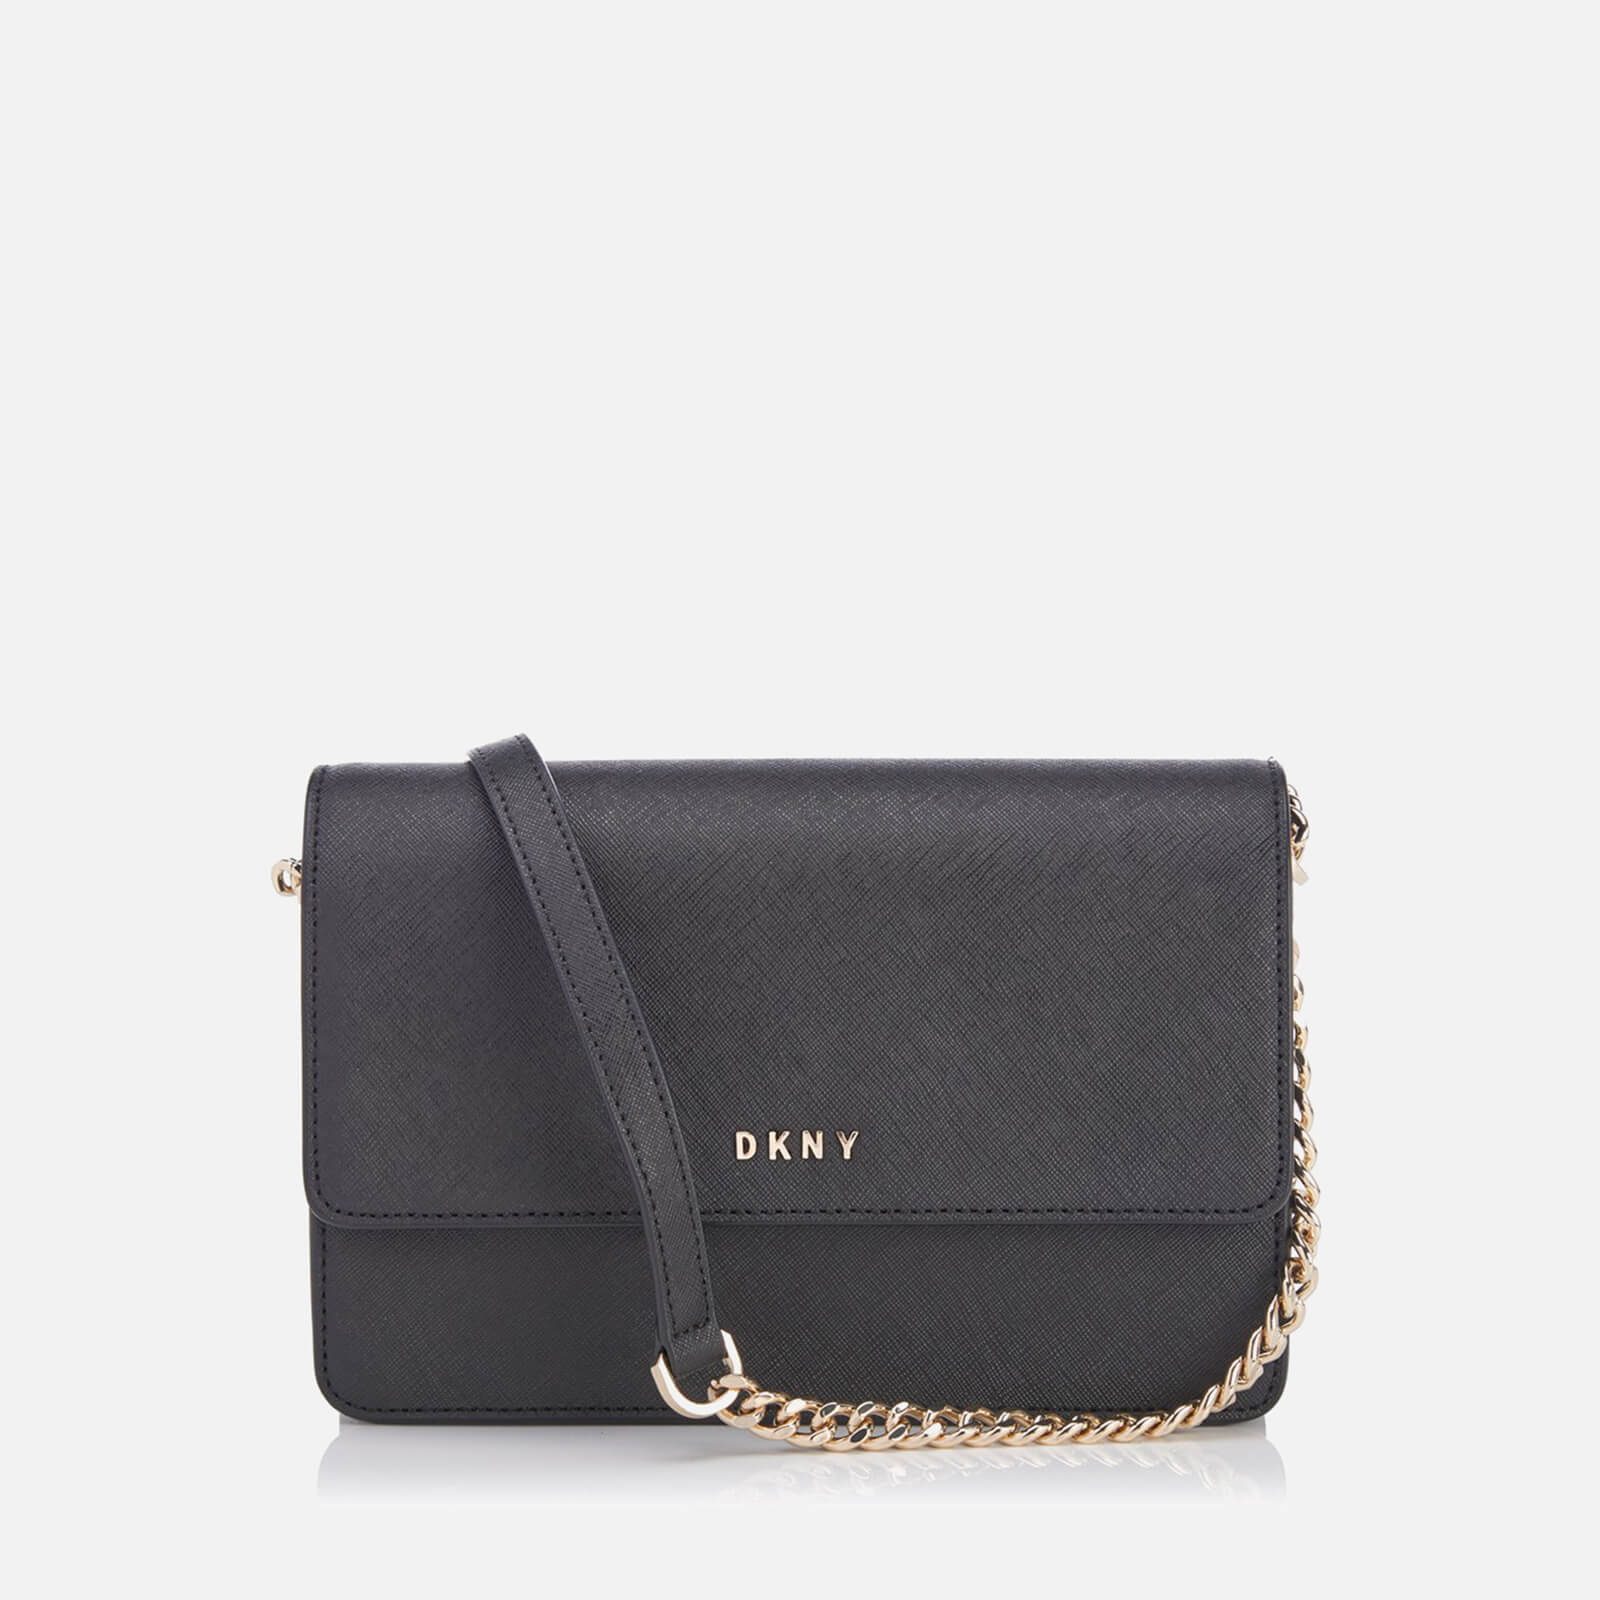 d9f978659 DKNY Women's Bryant Park Small Flap Cross Body Bag - Black - Free UK  Delivery over £50